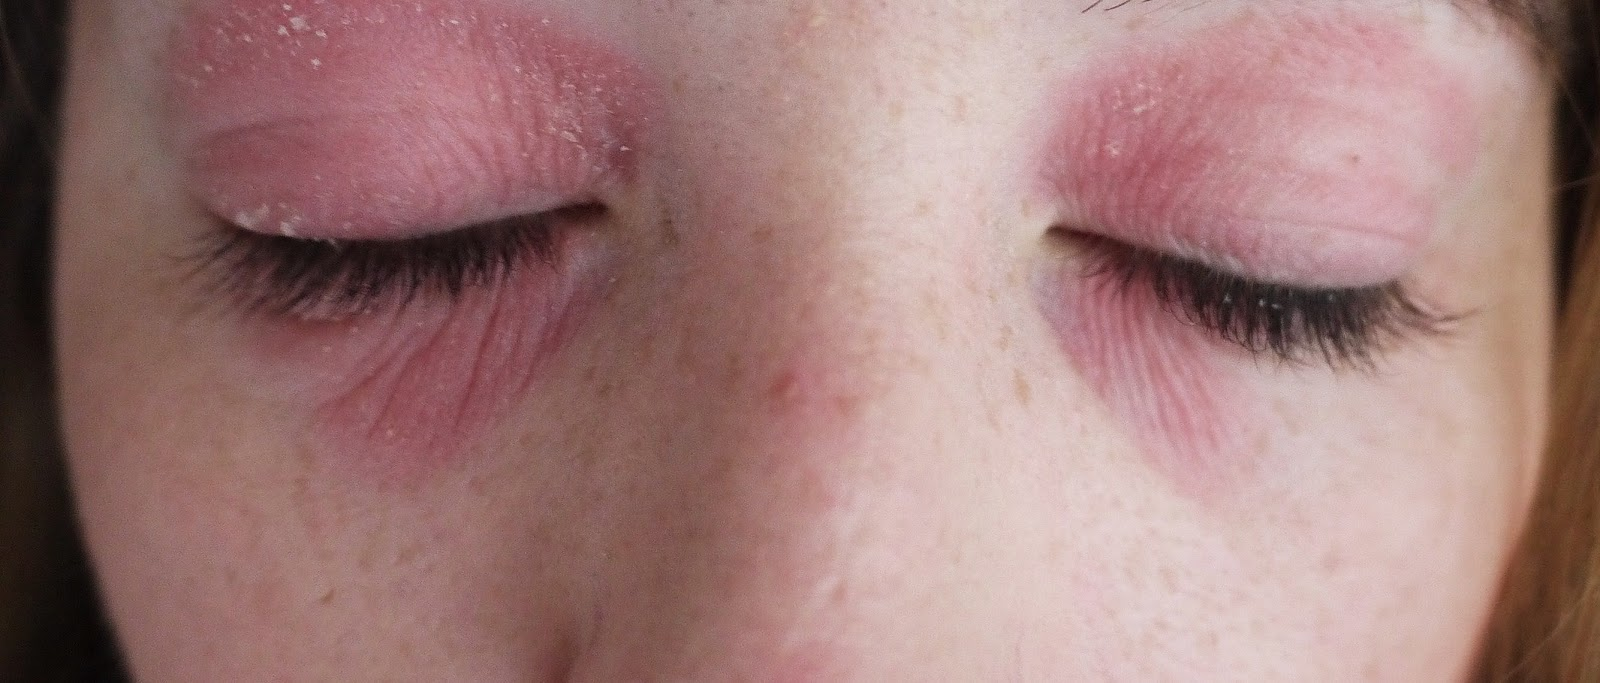 Swollen and red dry eyes caused by eye eczema and eczema around the eyes and face